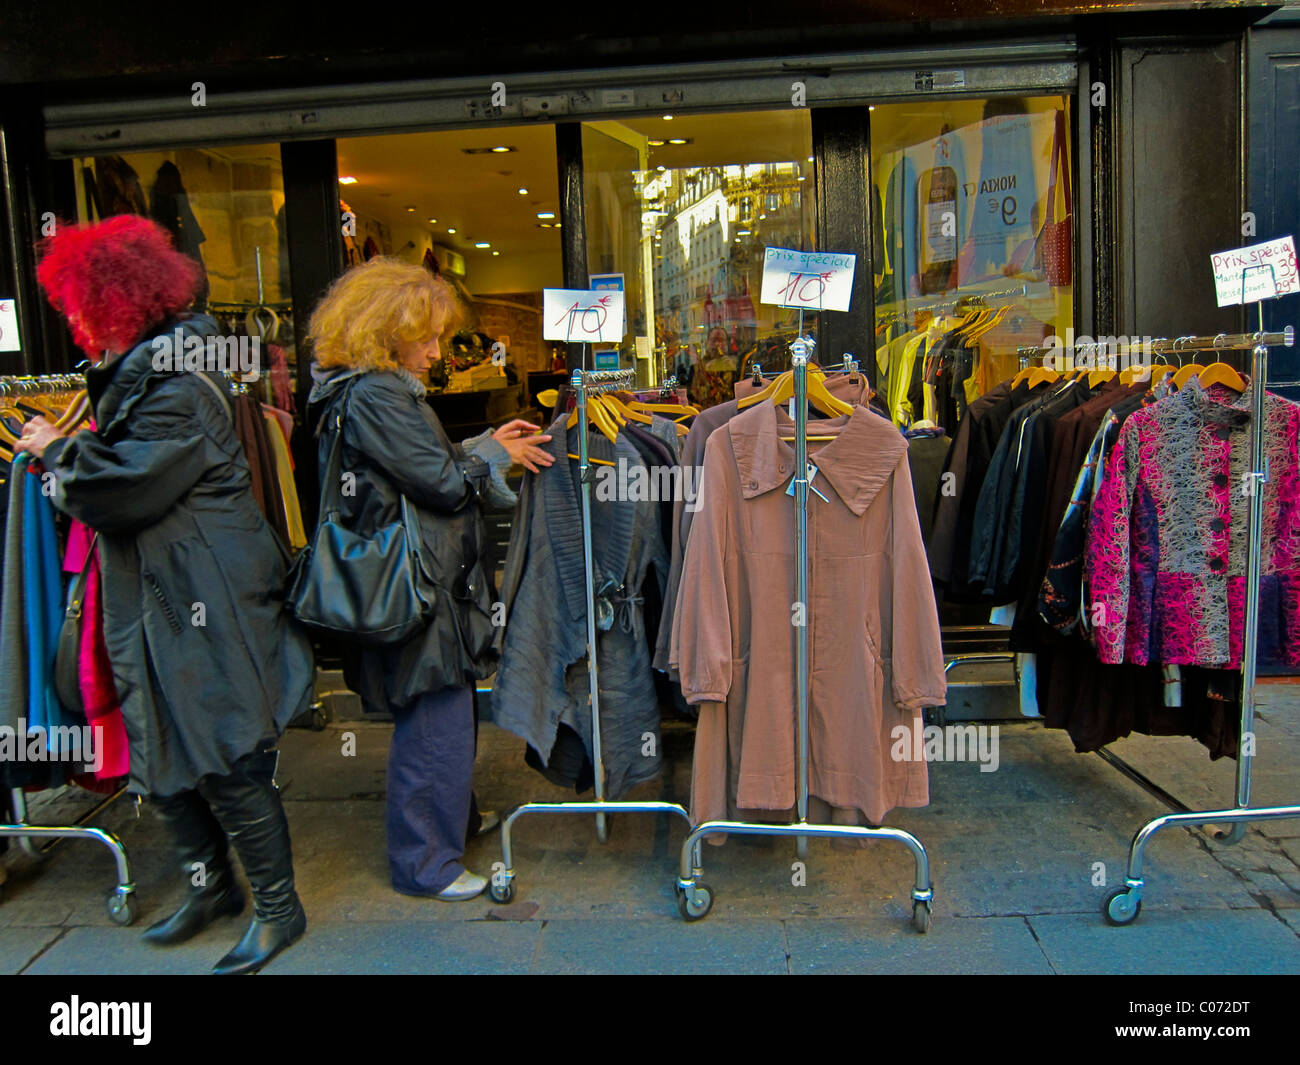 Clothing stores in paris france